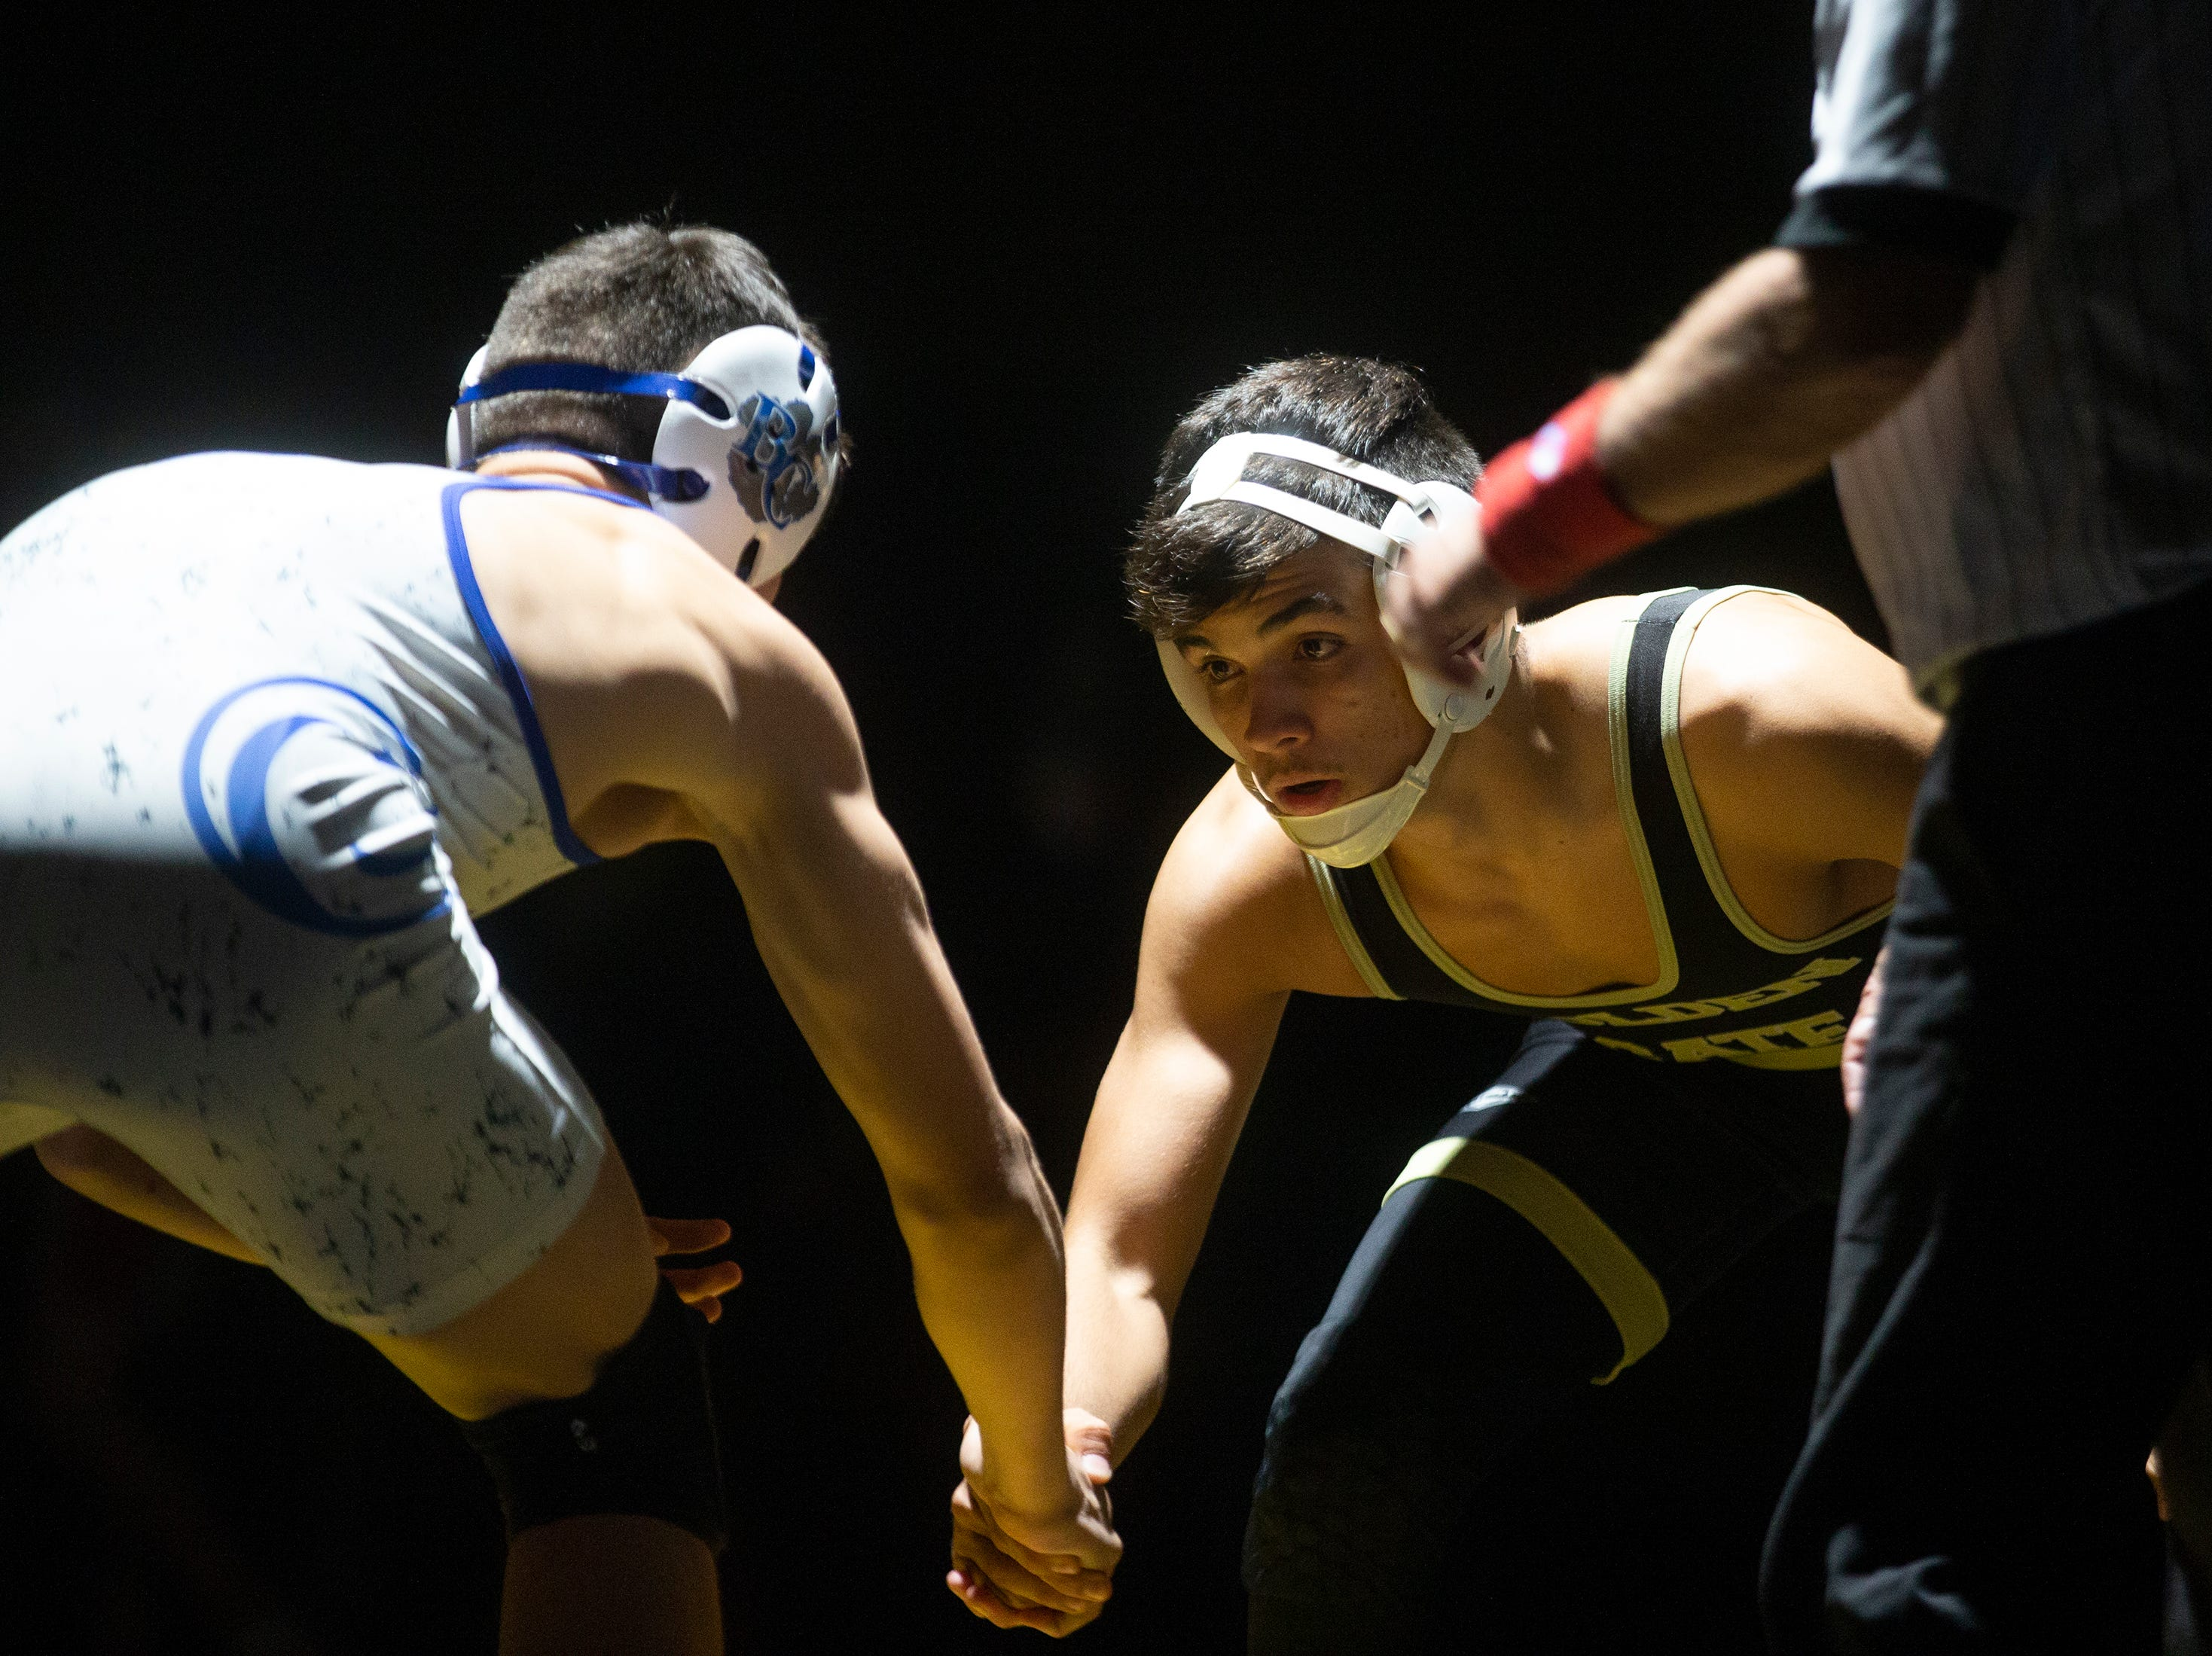 Golden Gate High School's Lais Cardero wrestles Barron G. Collier High School's Cory Cannan in the 152-pound weight class during the Collier County Athletic Conference wrestling championship, Wednesday, Jan. 9, 2018, at Naples High School.